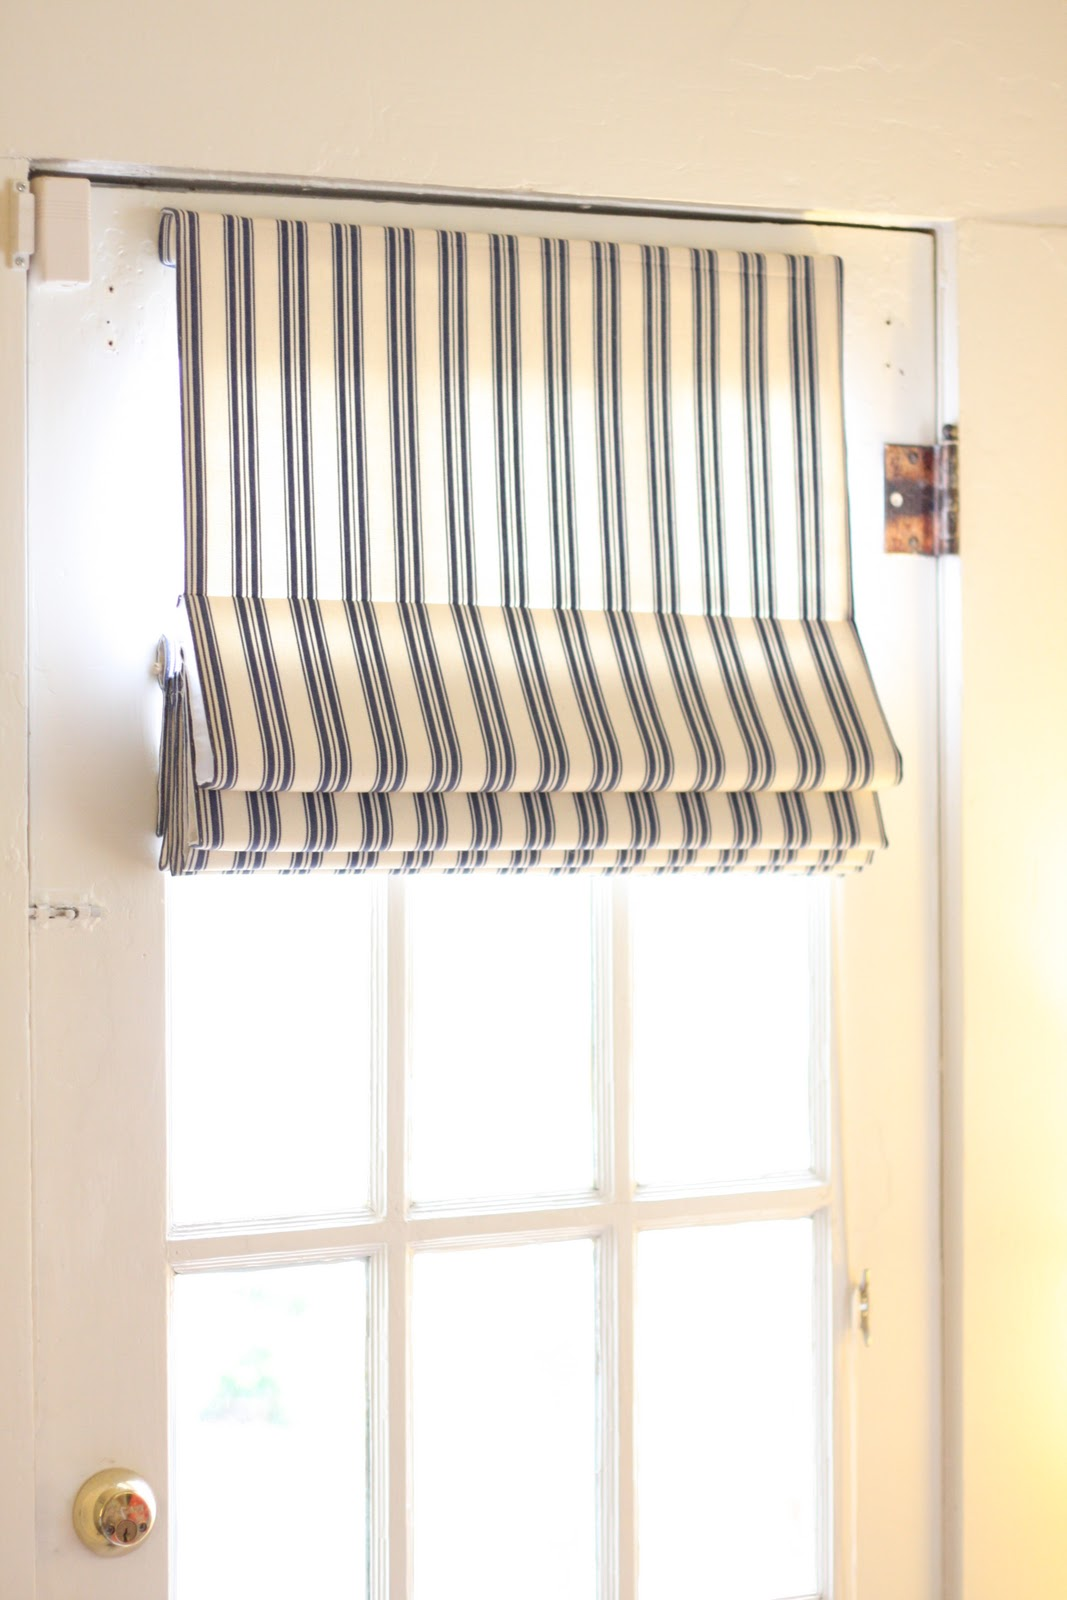 Diy Roman Shades For French Doors Christie Chase 287 Sol 39s Guest Office Workout Lounge